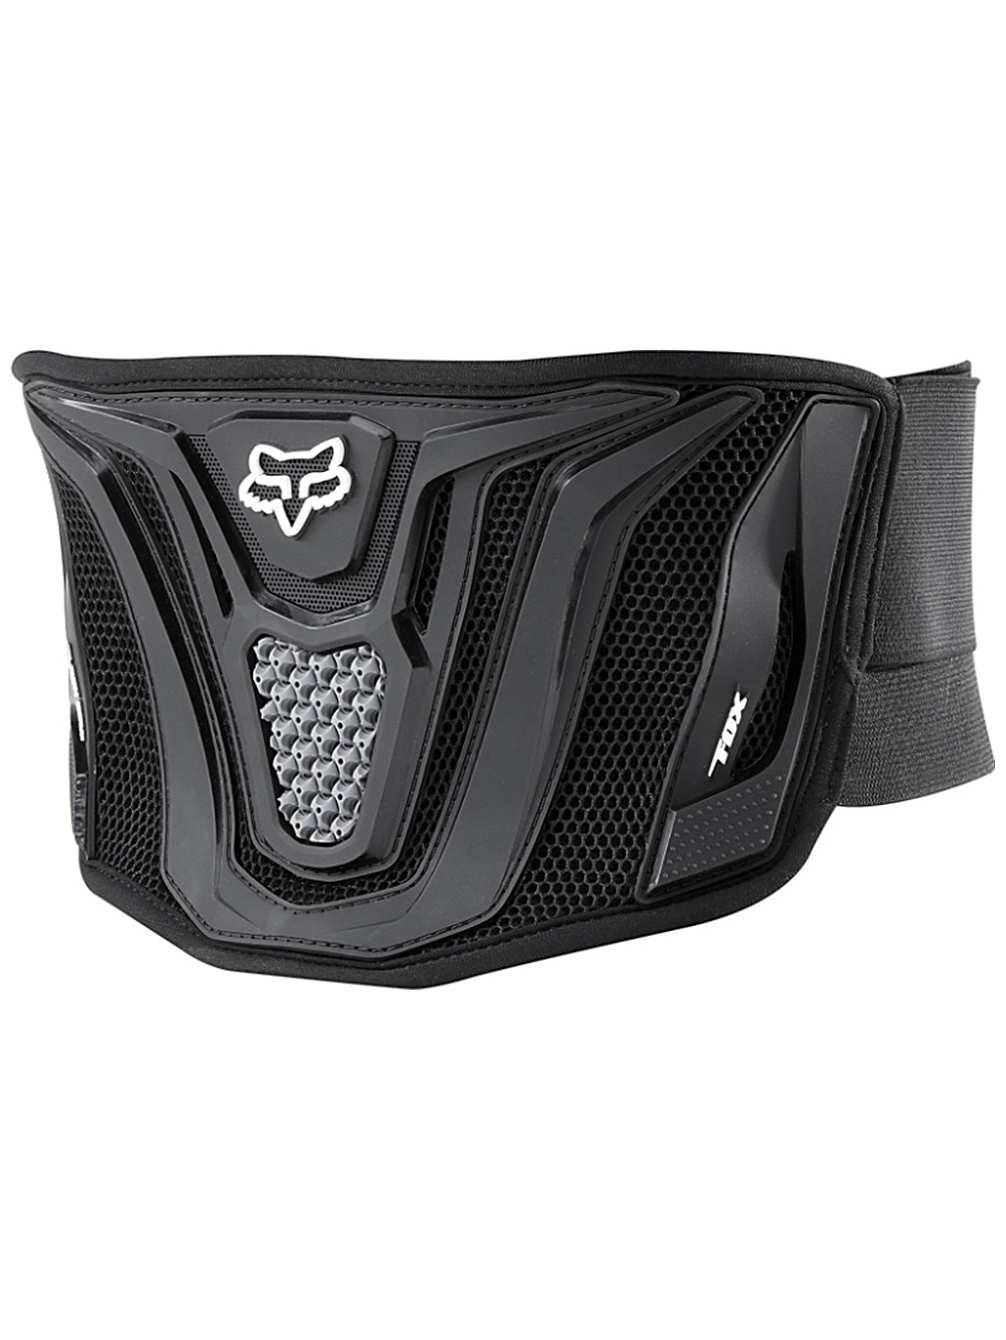 FOX Racing 07036 MX Black Belt Black Grey OSFM